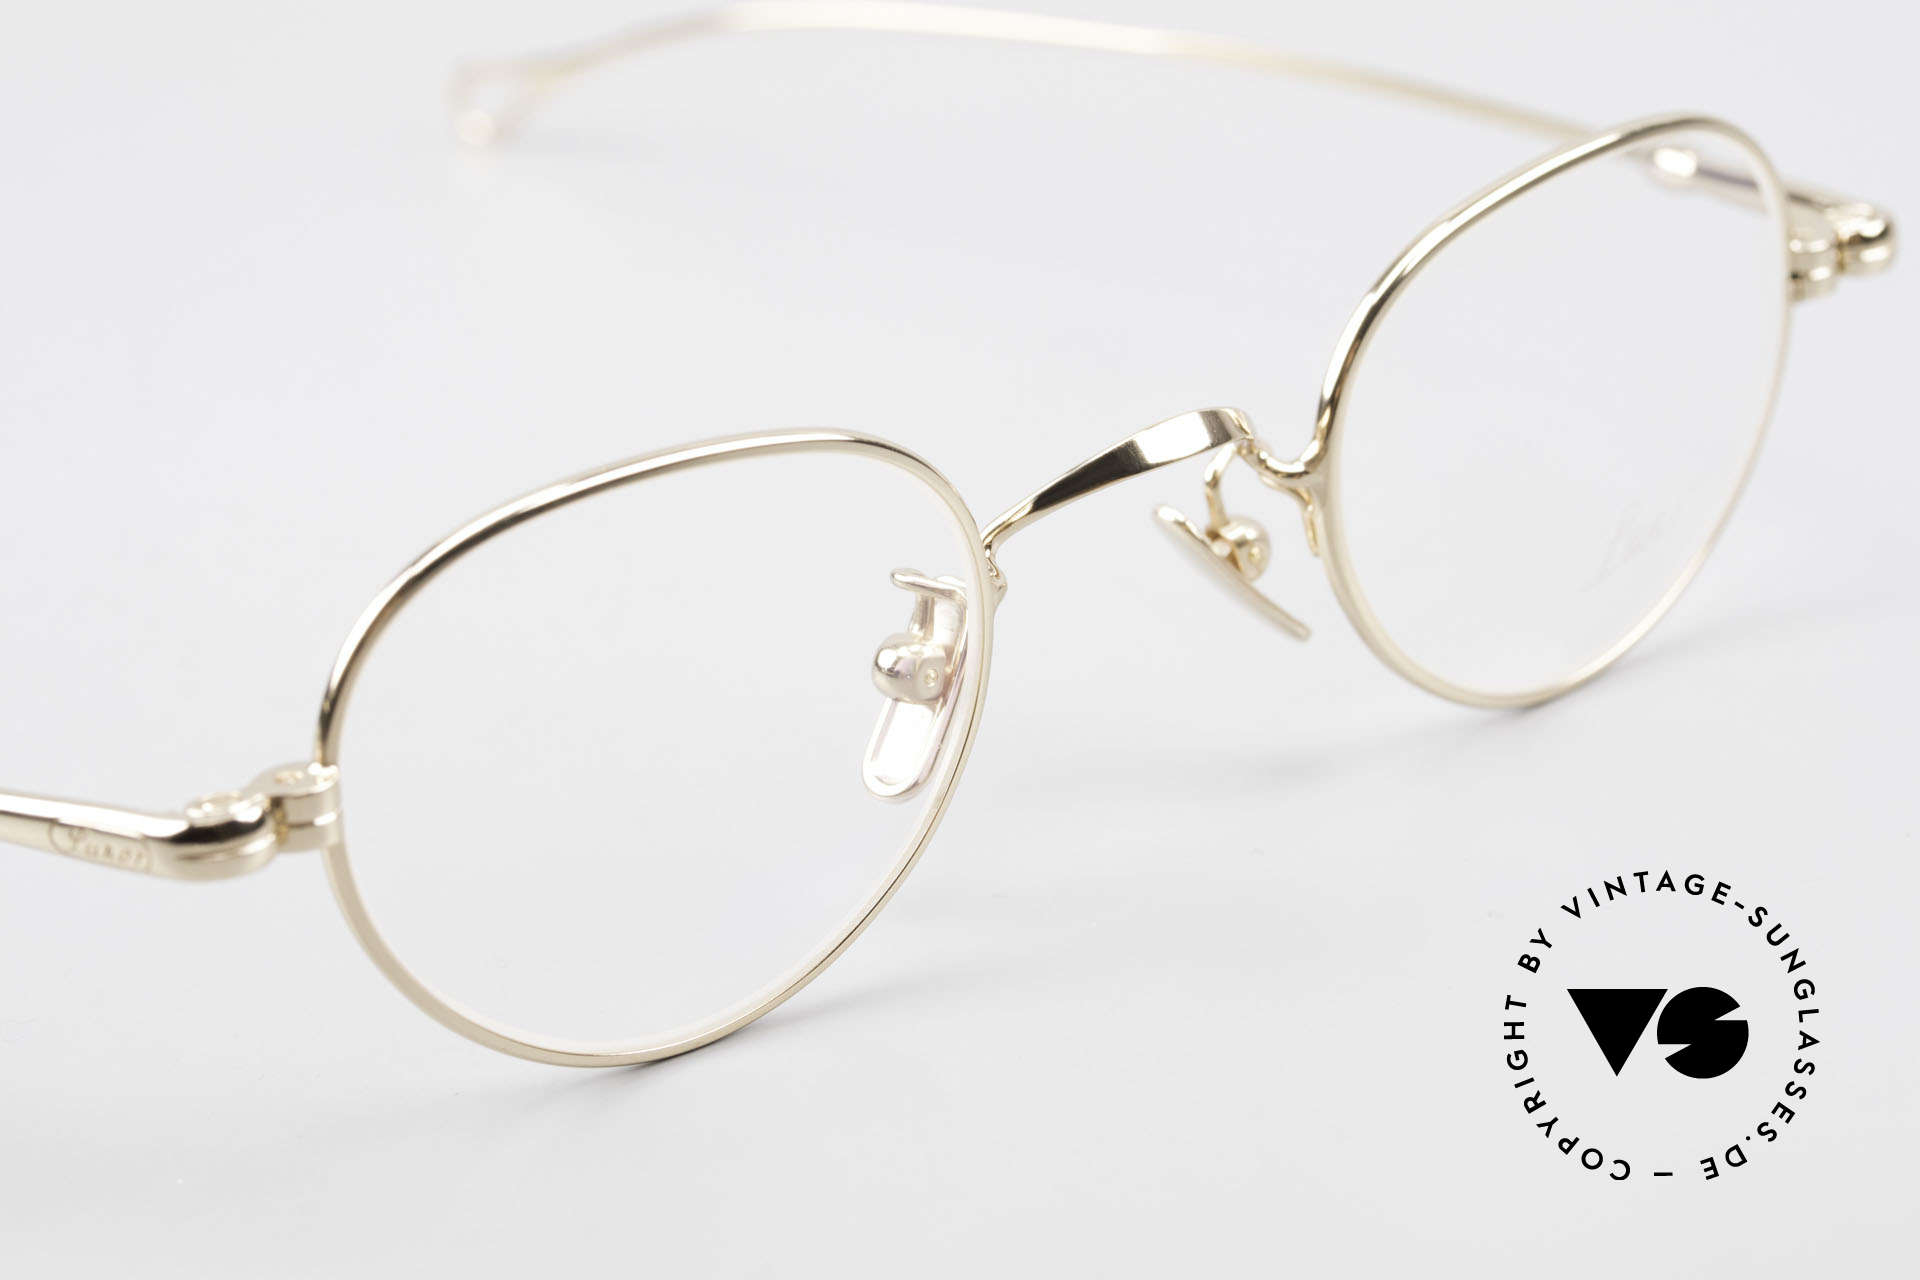 Lunor V 103 Timeless Gold Plated Glasses, thus, we decided to take it into our vintage collection, Made for Men and Women